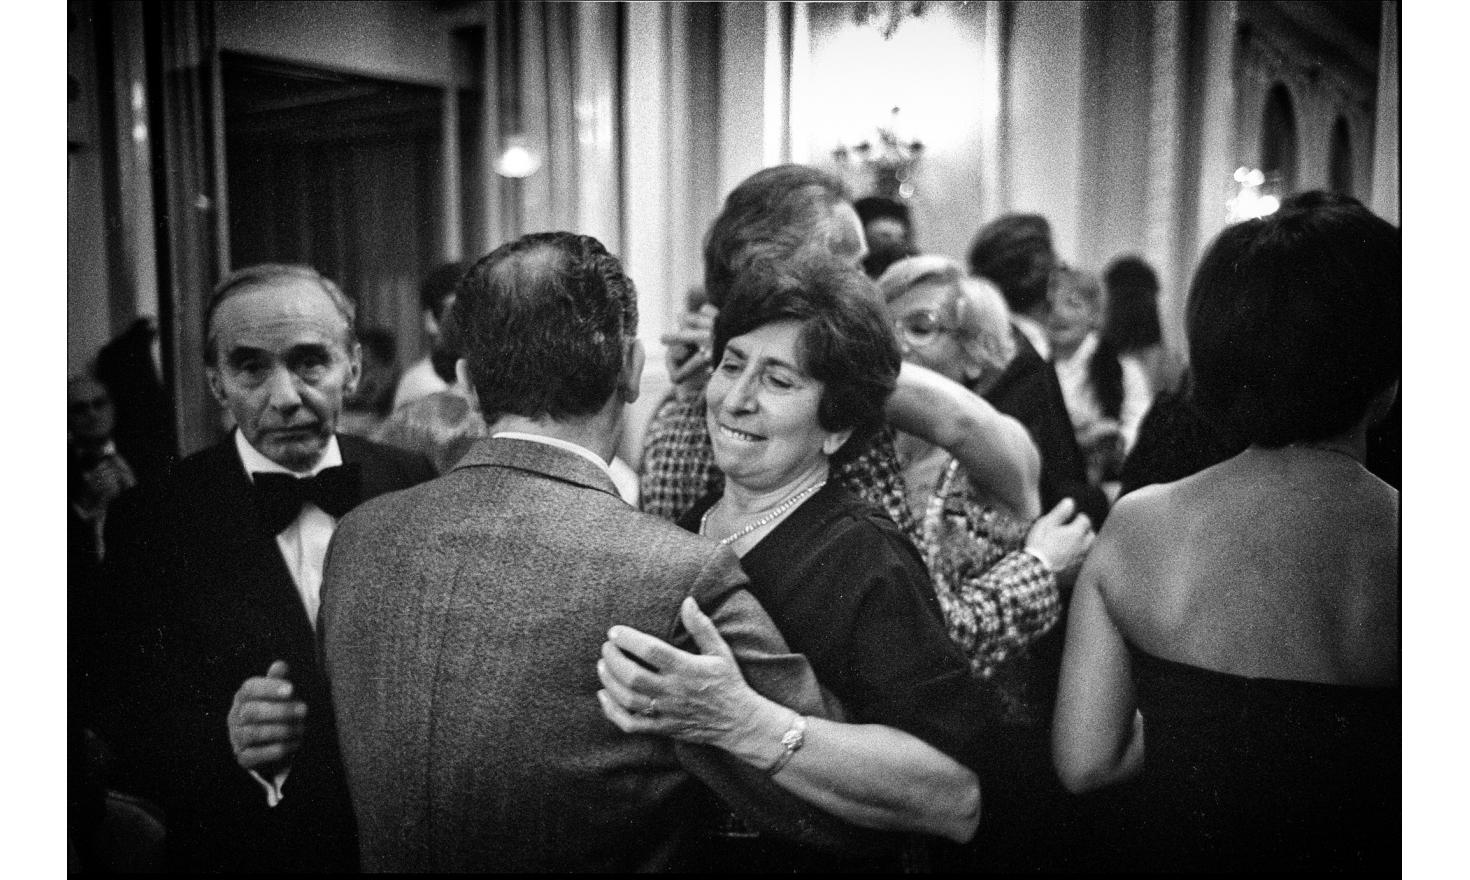 At the wedding of Véronique, my cousin, my parents dance together, but it looks more of a fight than anything else. My father finally win, with a big smile. Paris, november 1977.